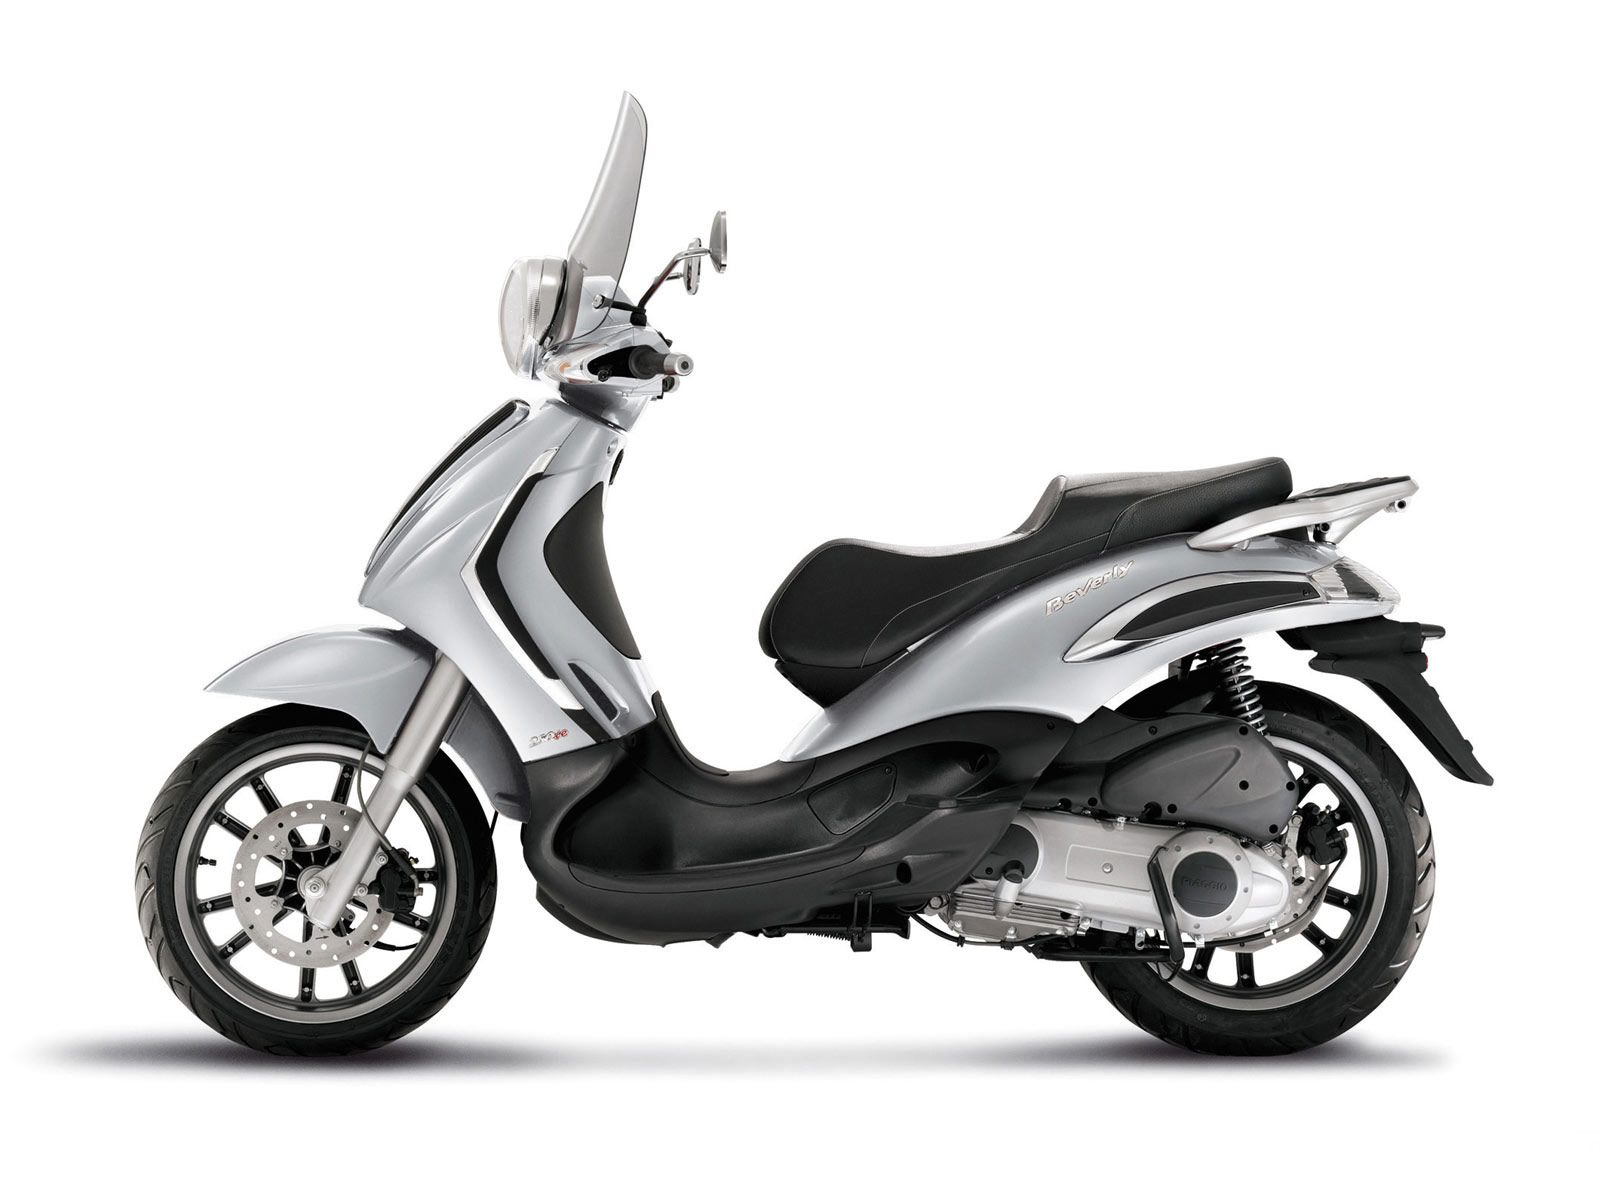 2008 piaggio beverly tourer 250ie scooter pictures. Black Bedroom Furniture Sets. Home Design Ideas